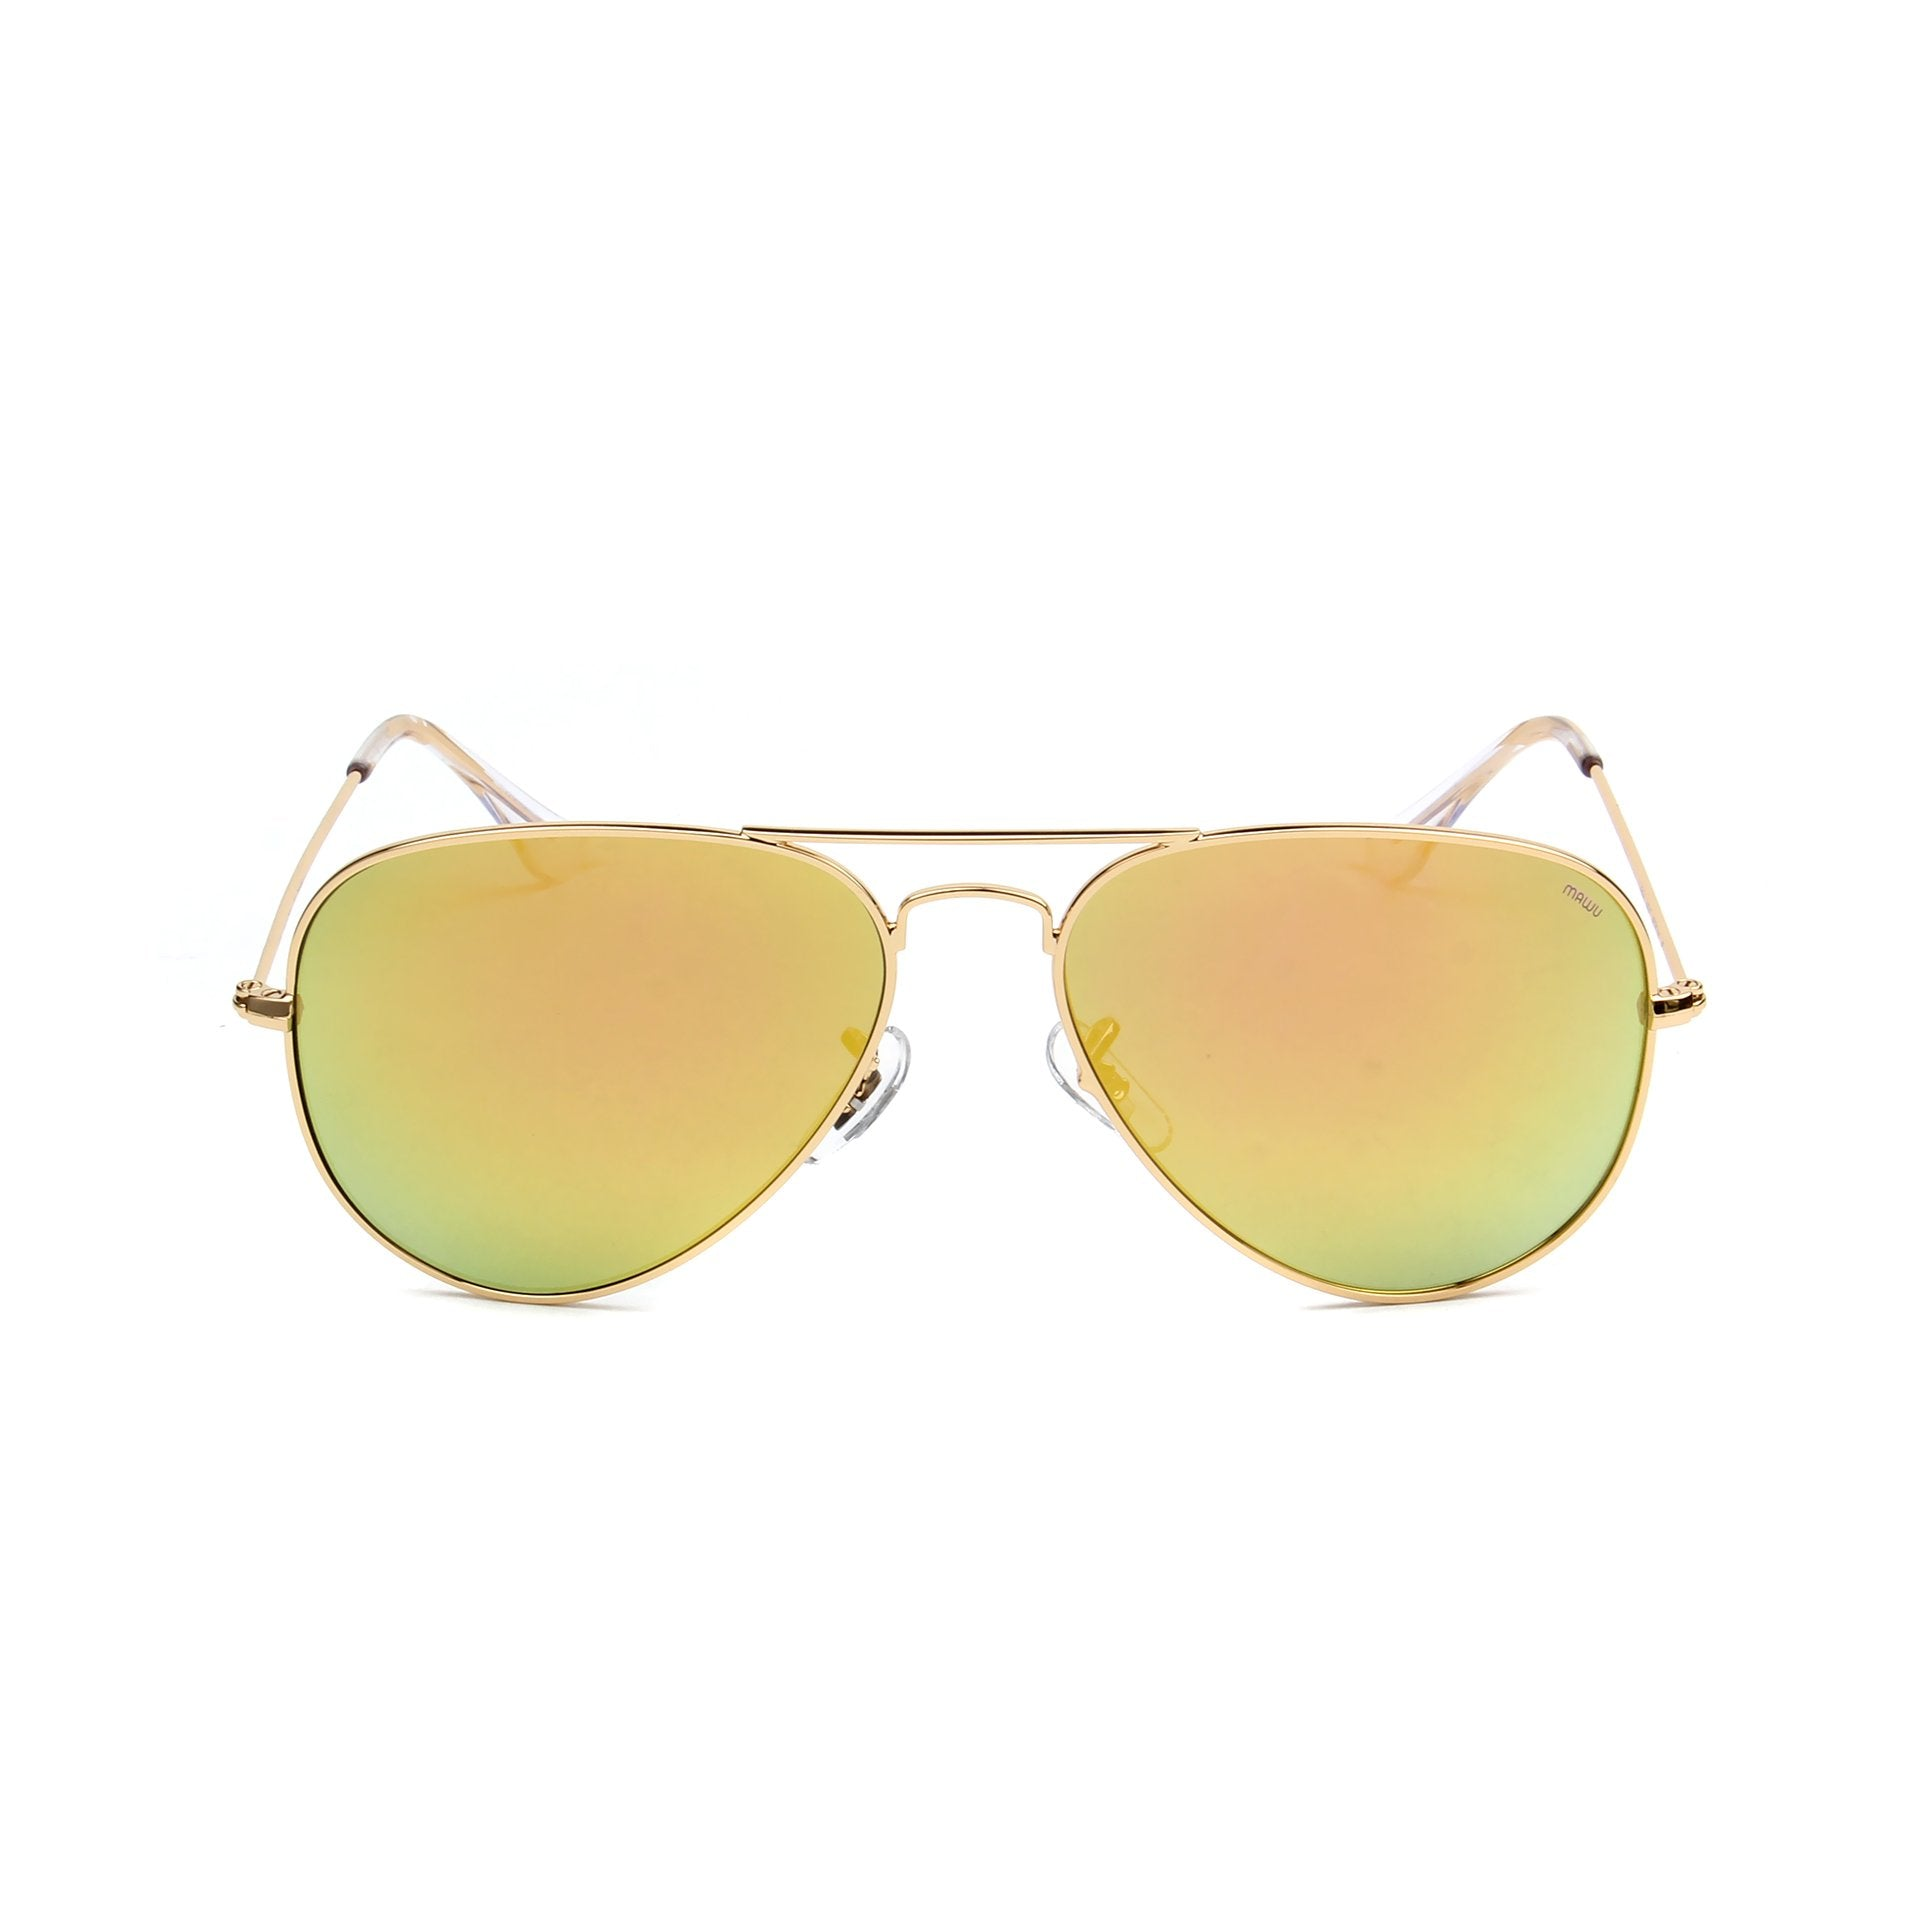 Rafale Gold - Front View - Gold Mirror lens - Mawu sunglasses